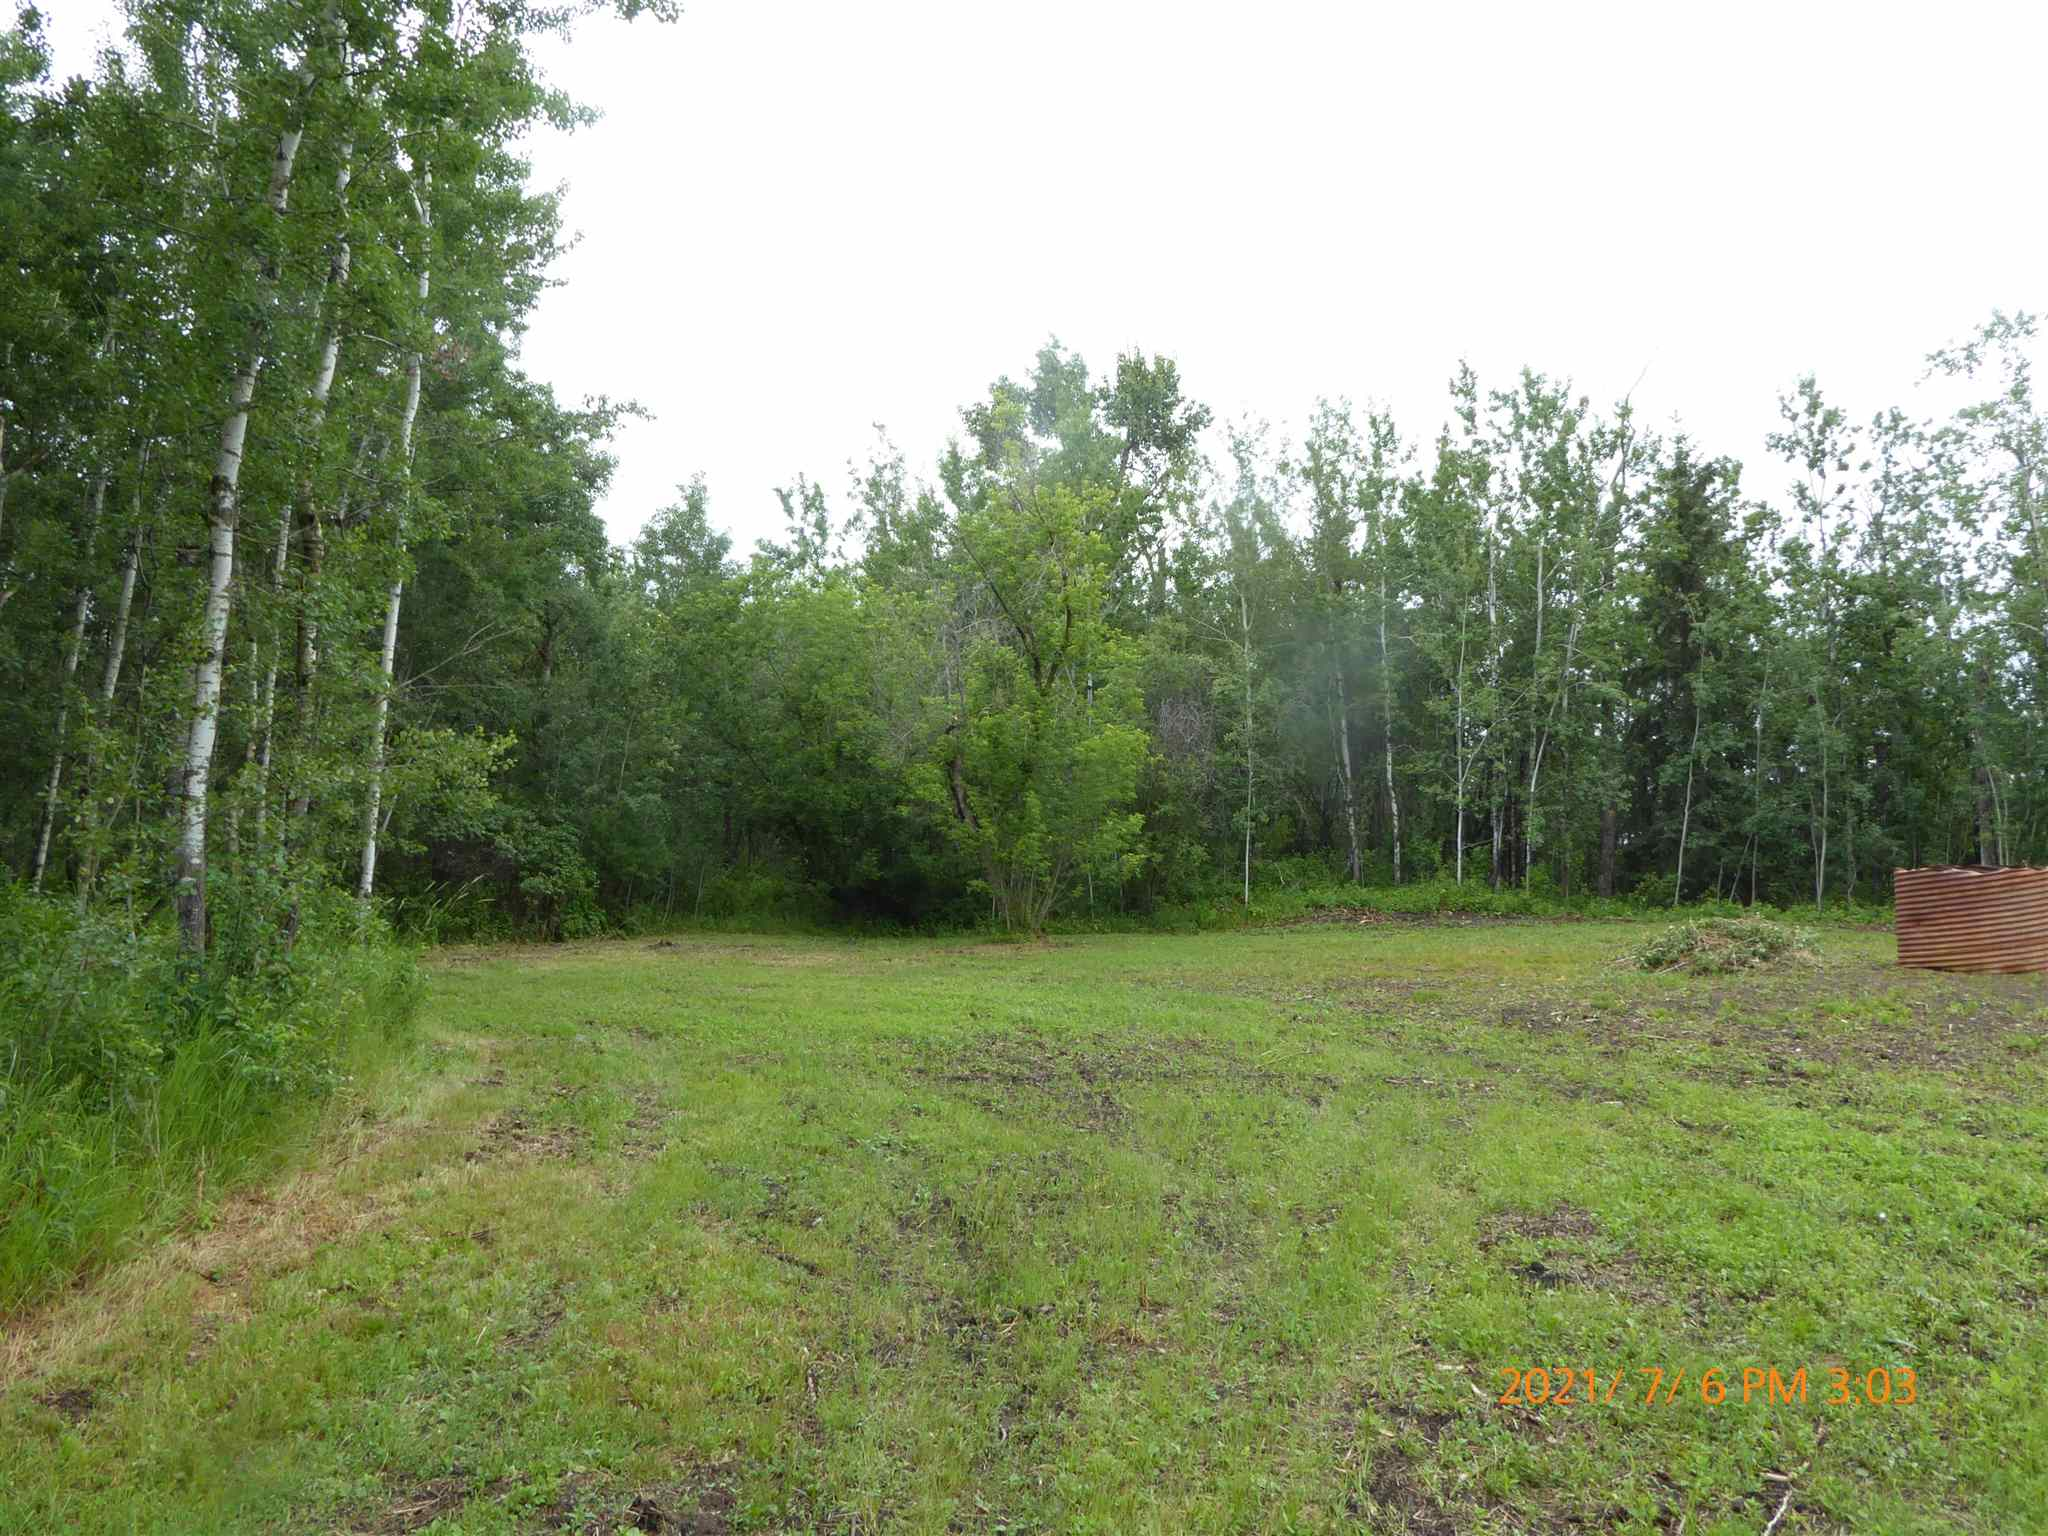 Nice Private treed lot with cleared spot for building site located near the South shore of South Cooking Lake only 12 paved minutes from Sherwood Park and the SouthEast corner of the Henday.